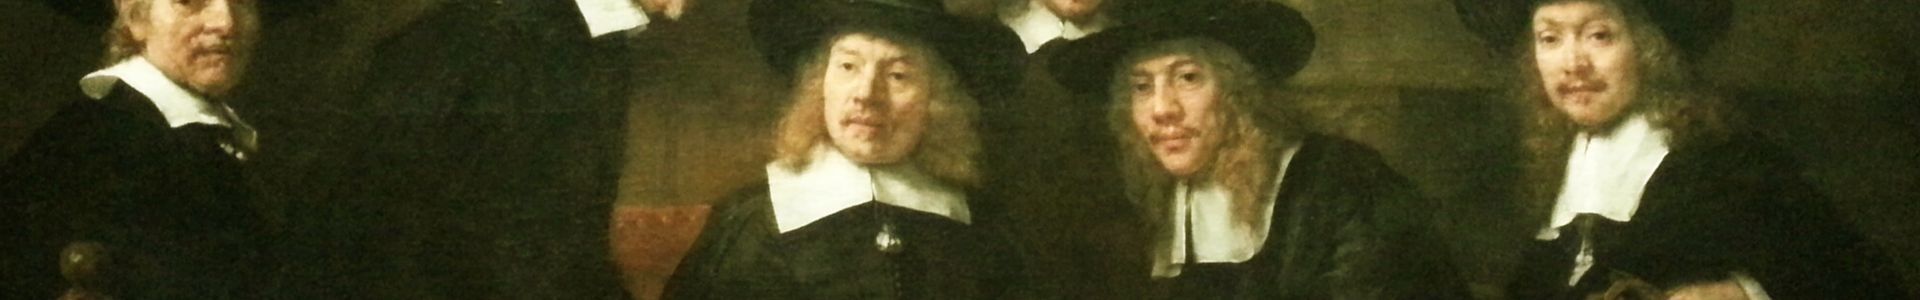 the-syndics-of-the-amsterdam-drapers-guild-rembrandt.jpg